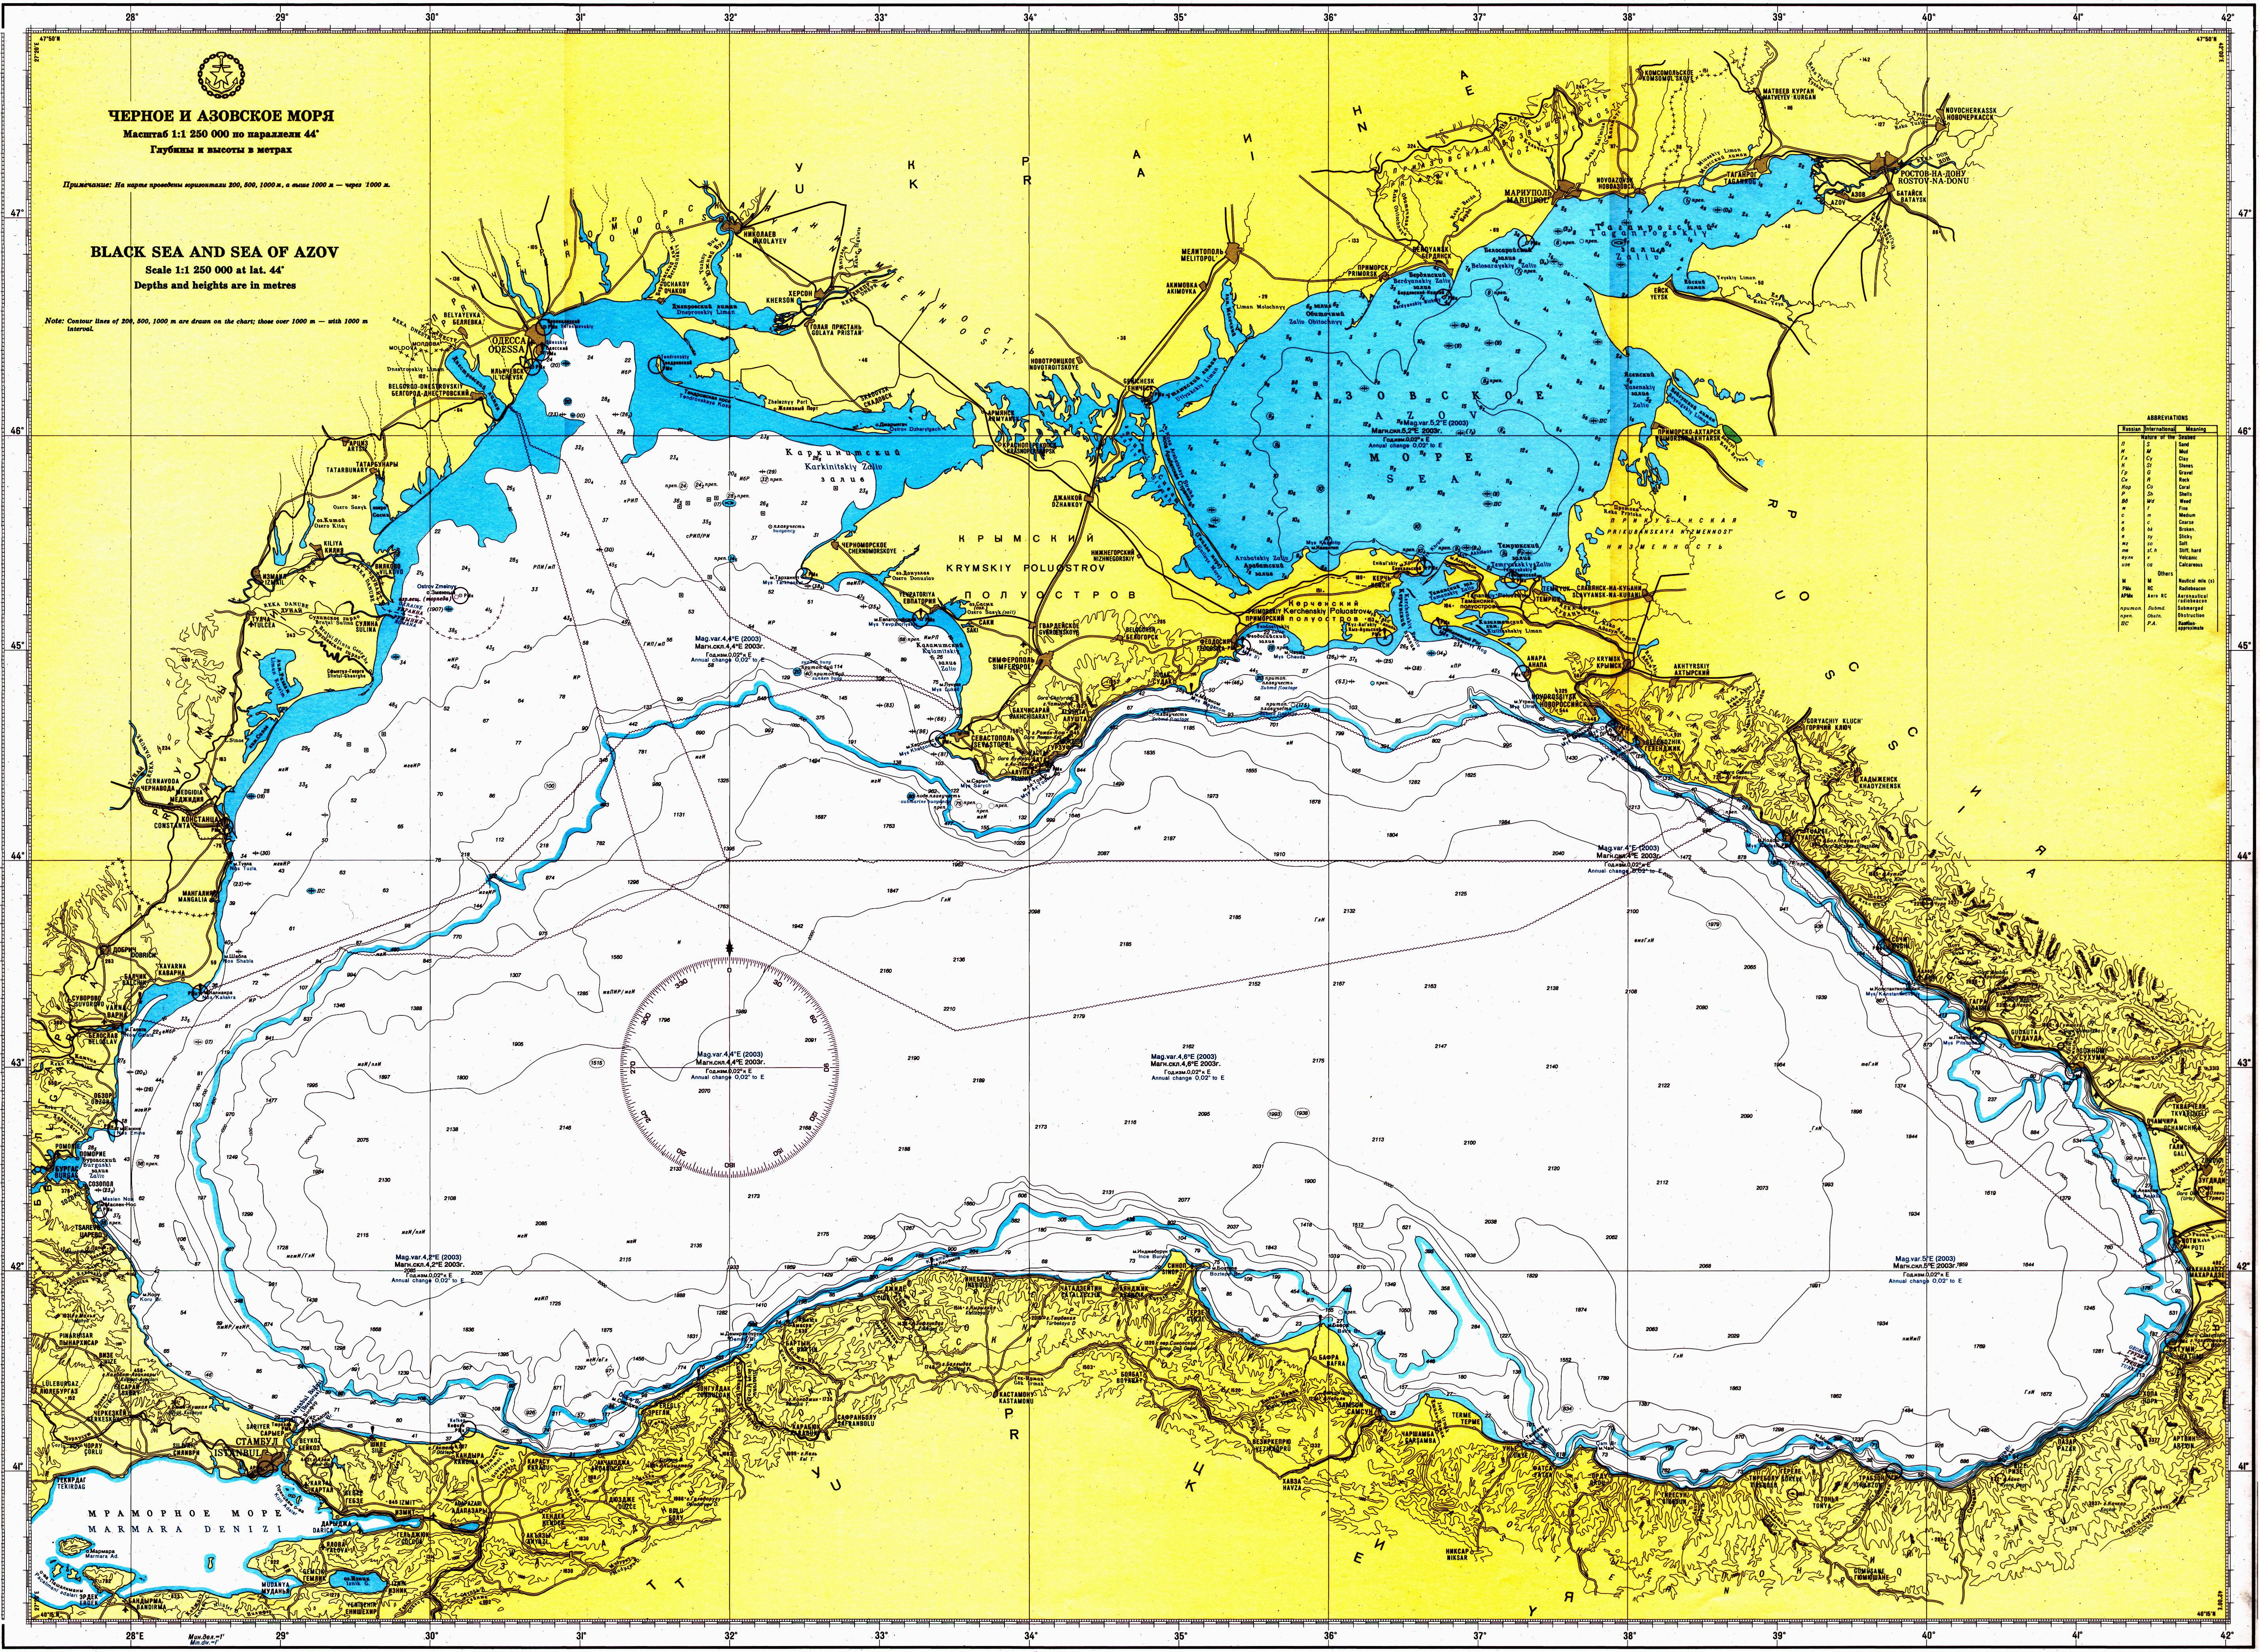 map_black_and_azov_sea.jpg